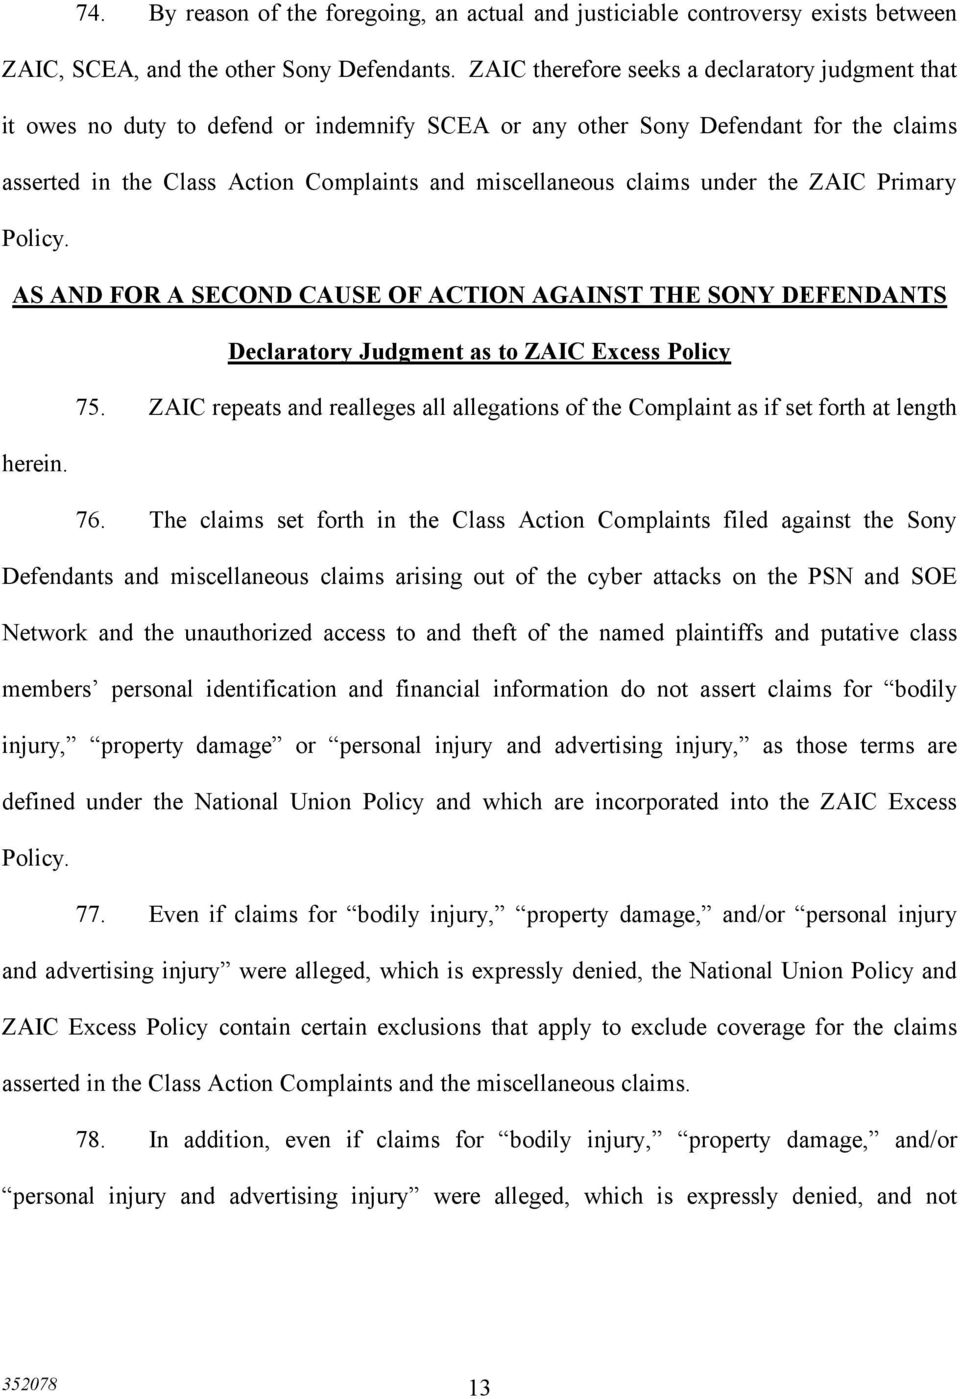 claims under the ZAIC Primary Policy. AS AND FOR A SECOND CAUSE OF ACTION AGAINST THE SONY DEFENDANTS Declaratory Judgment as to ZAIC Excess Policy 75.